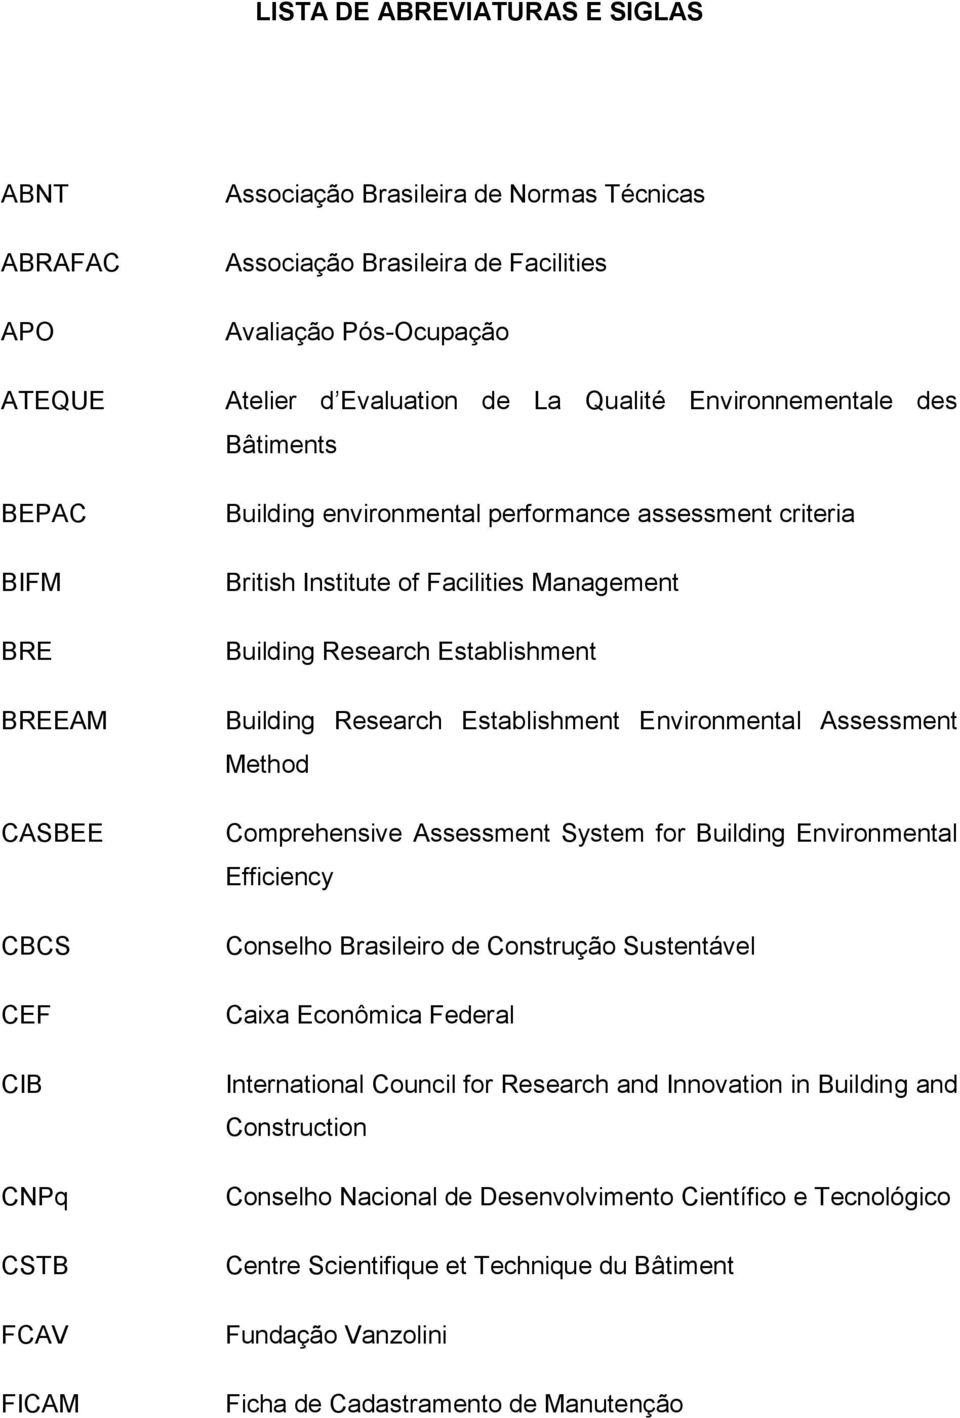 Research Establishment Building Research Establishment Environmental Assessment Method Comprehensive Assessment System for Building Environmental Efficiency Conselho Brasileiro de Construção